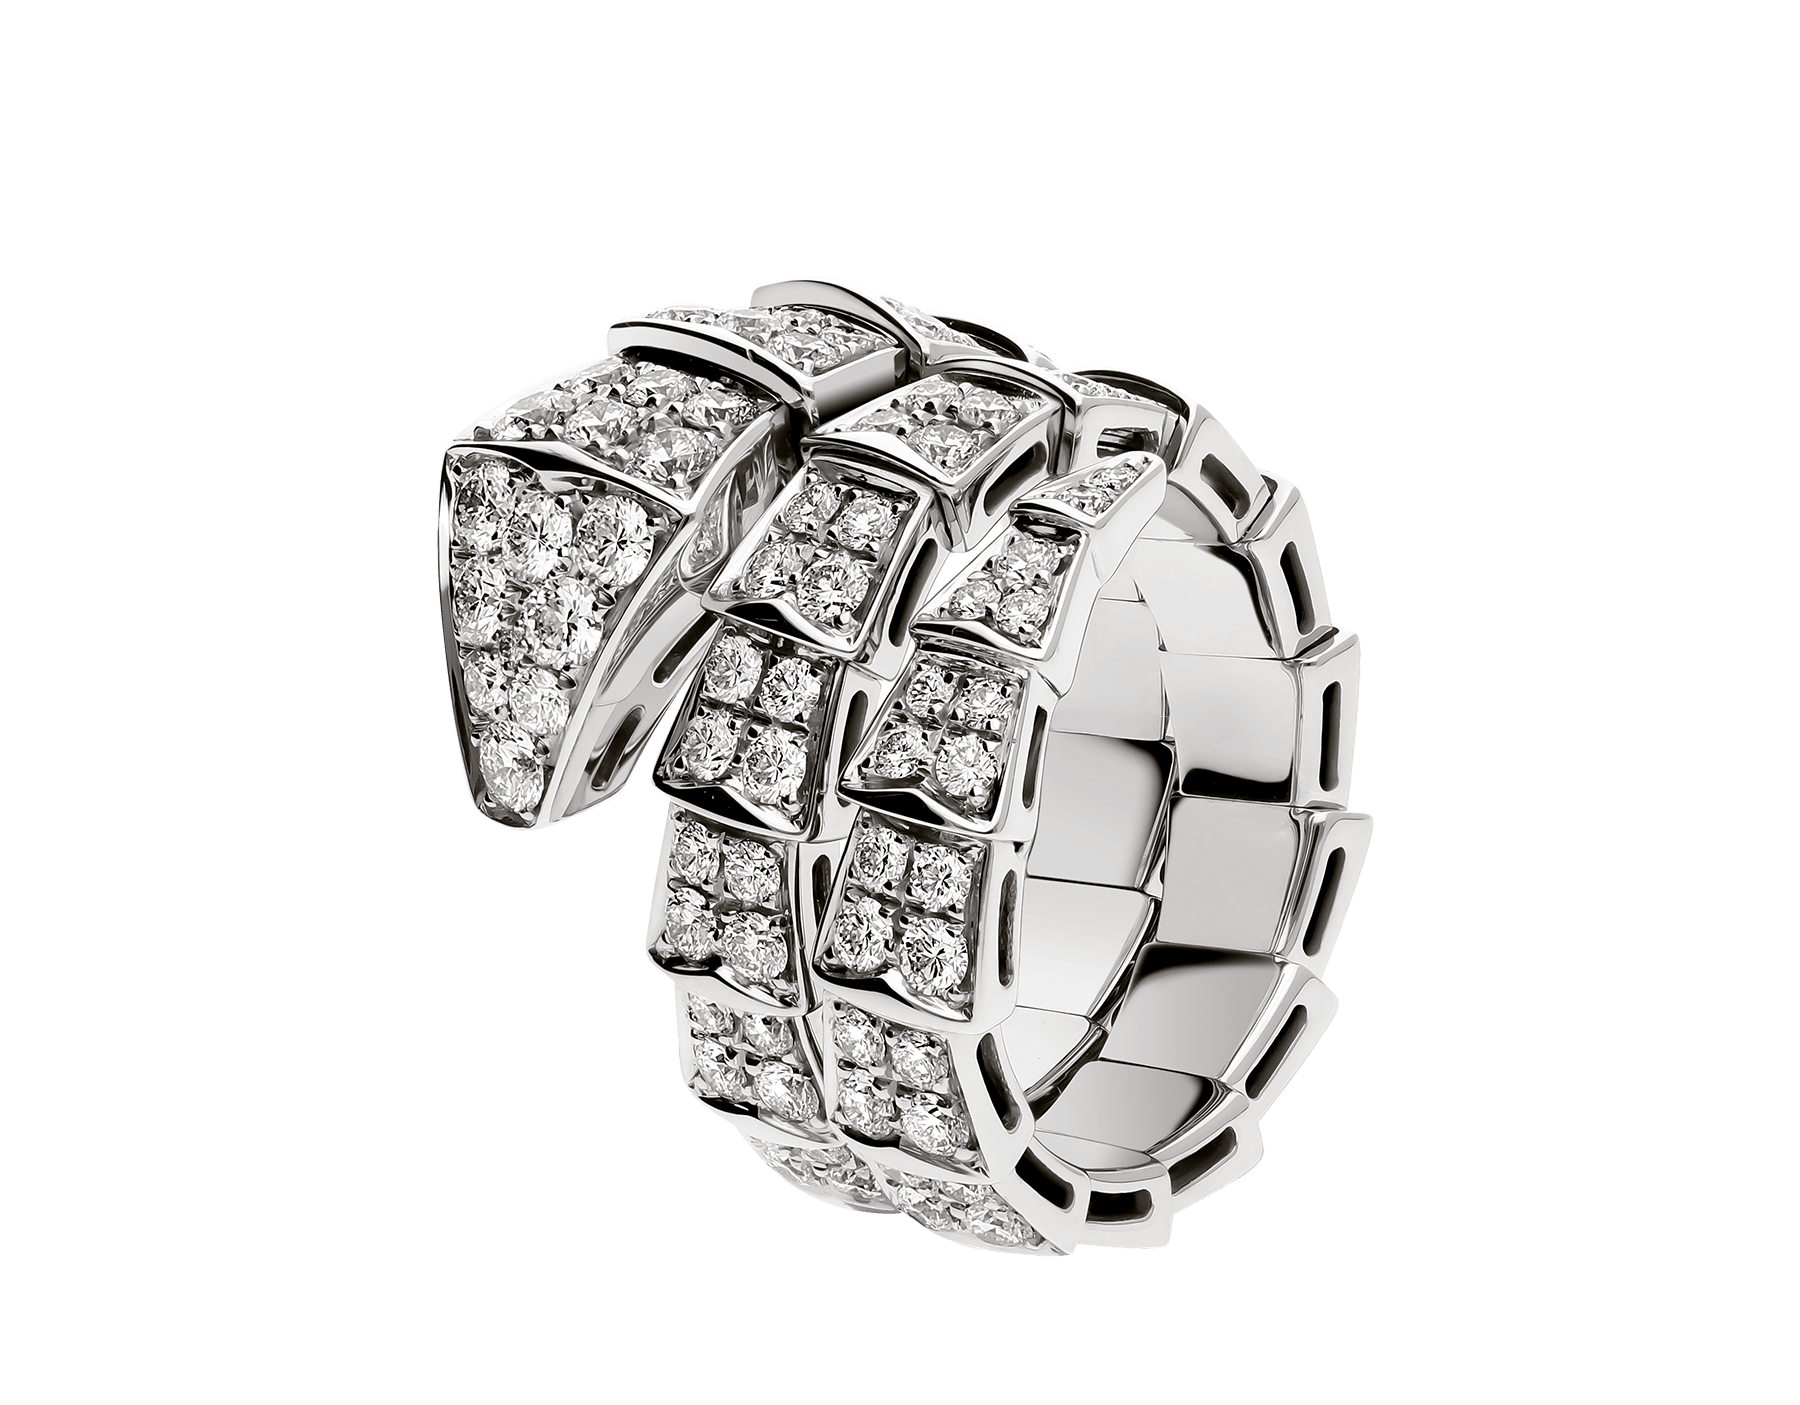 Serpenti Viper two-coil ring in 18 kt white gold, set with full pavé diamonds. AN855117 image 1